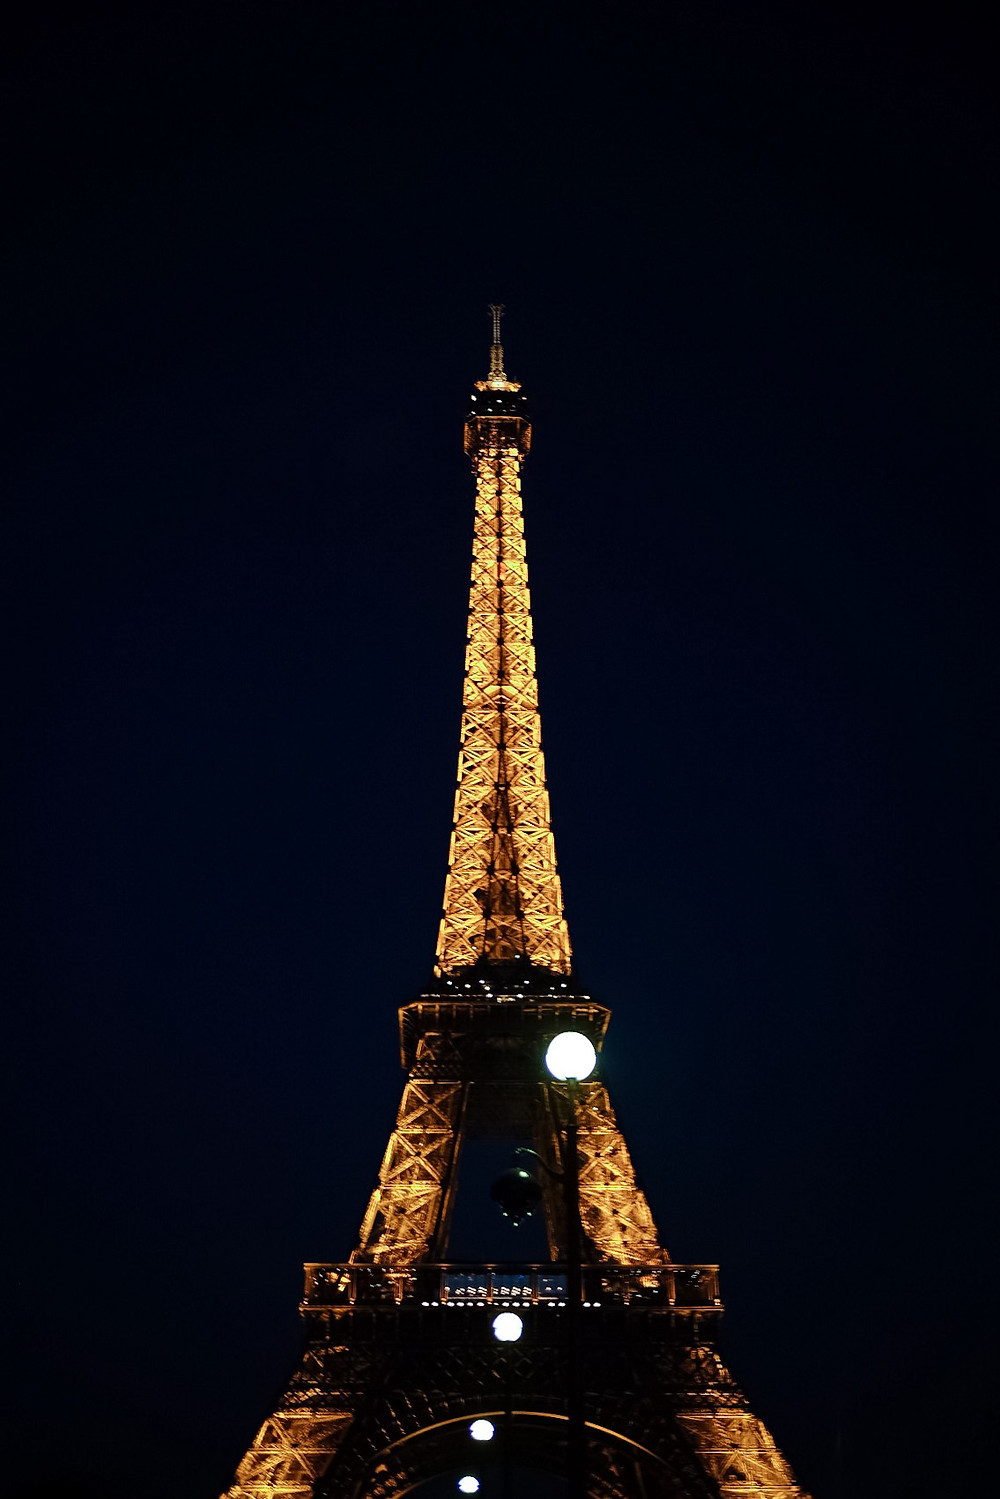 eiffle tower, glowing at night